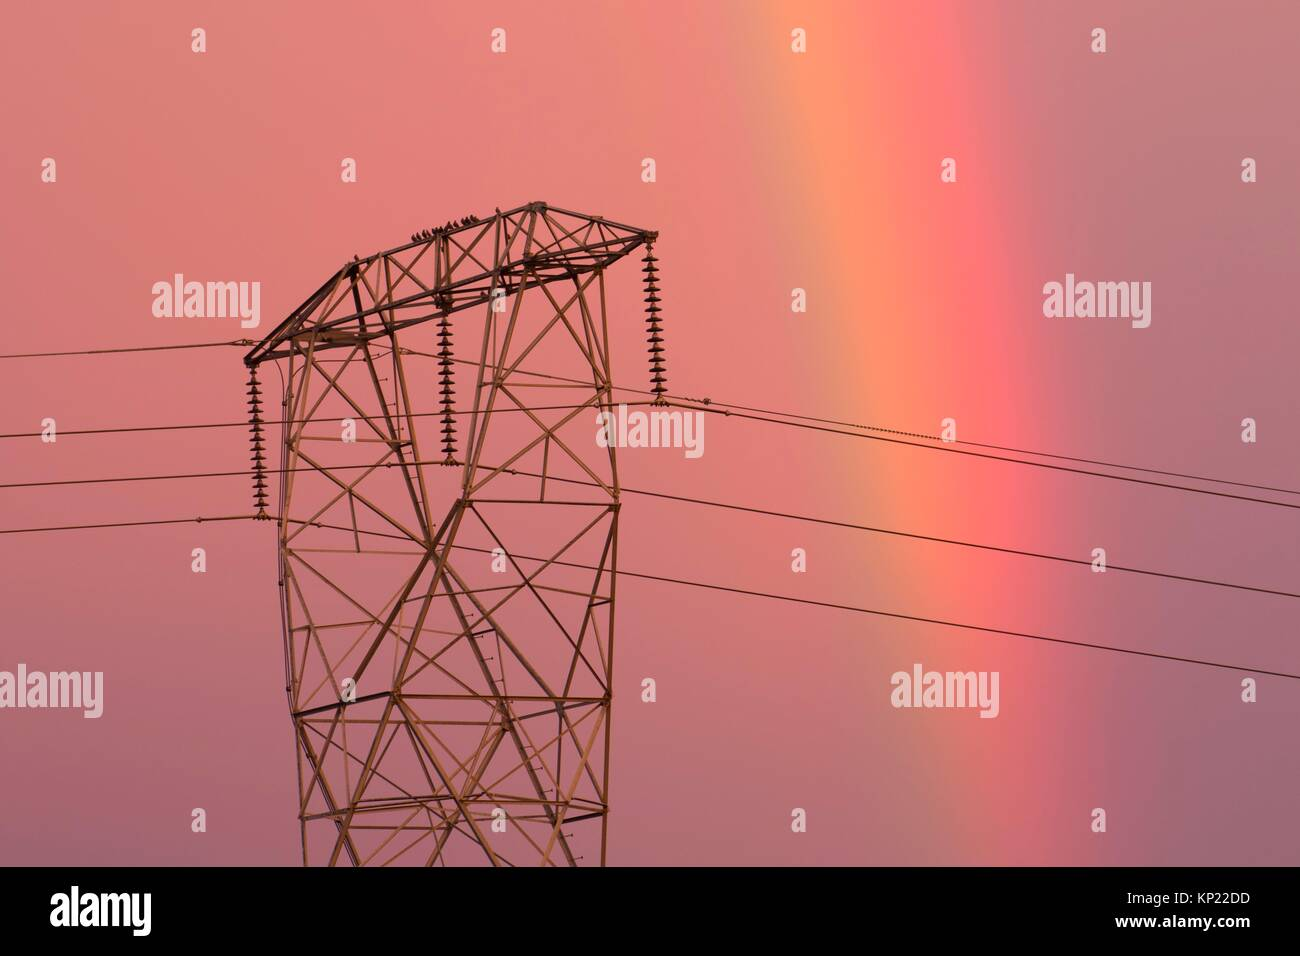 Utility tower with rainbow, Marion County, Oregon. - Stock Image